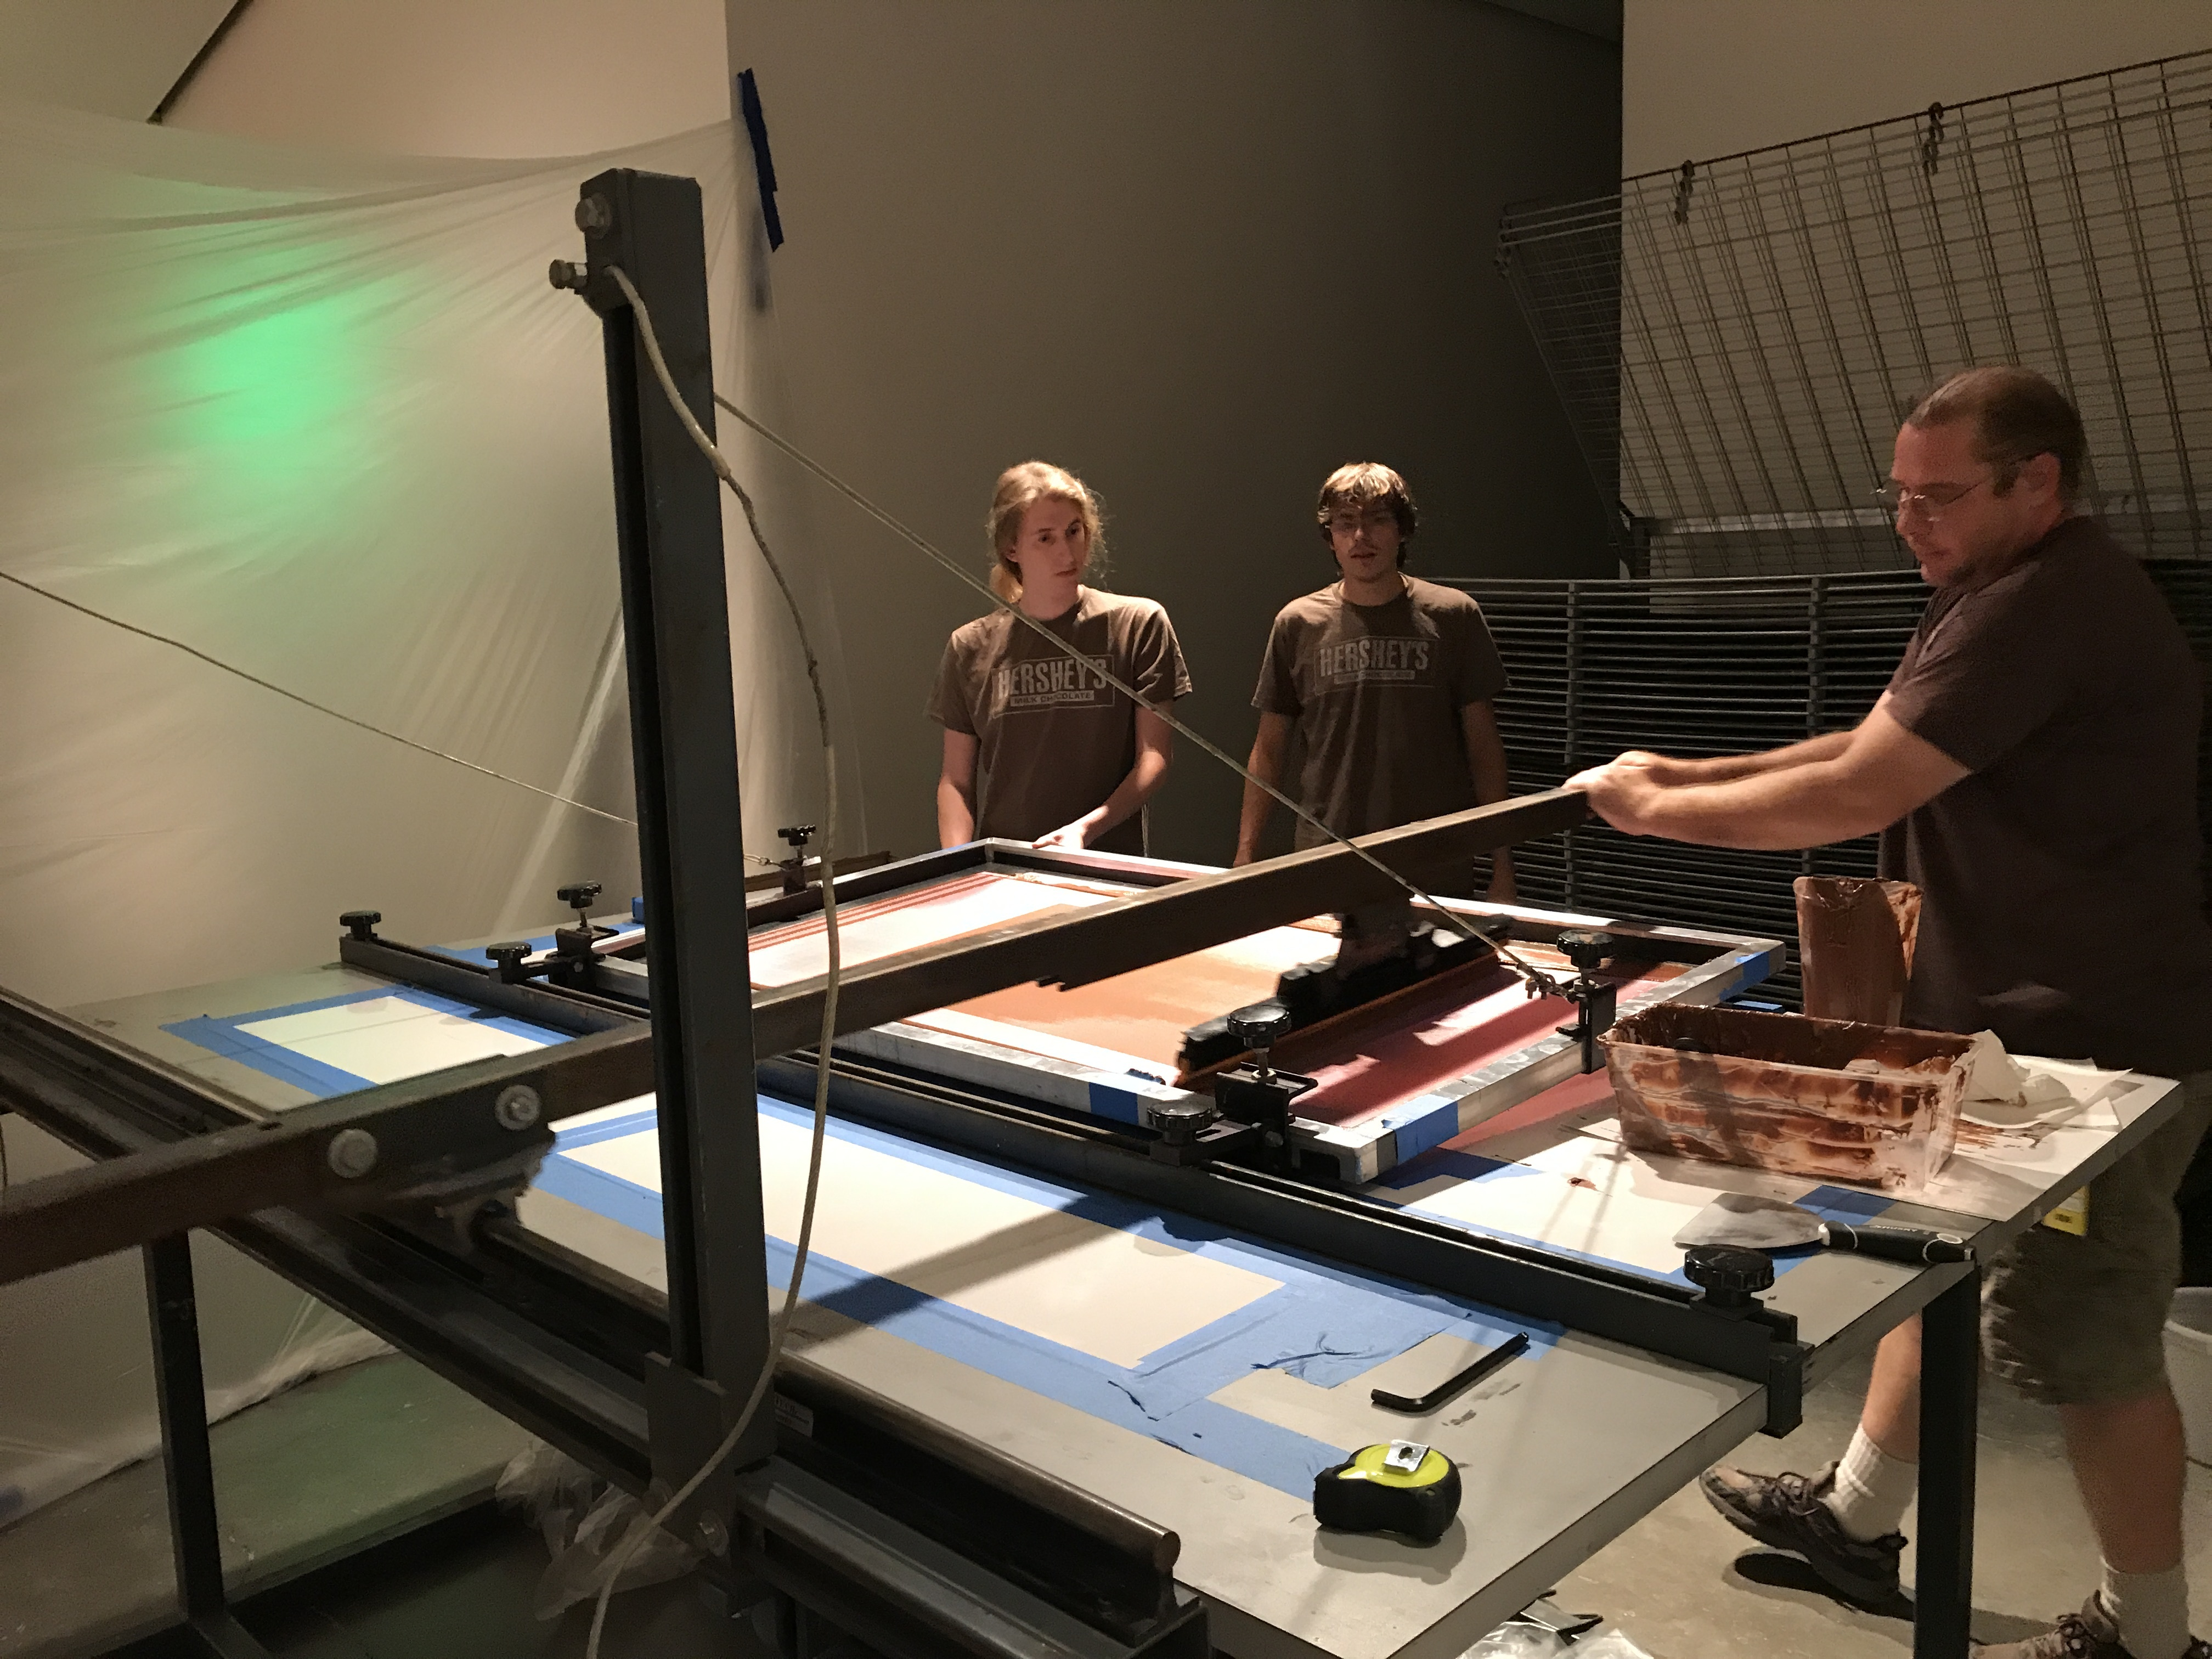 Three people operate a large screenprinting device